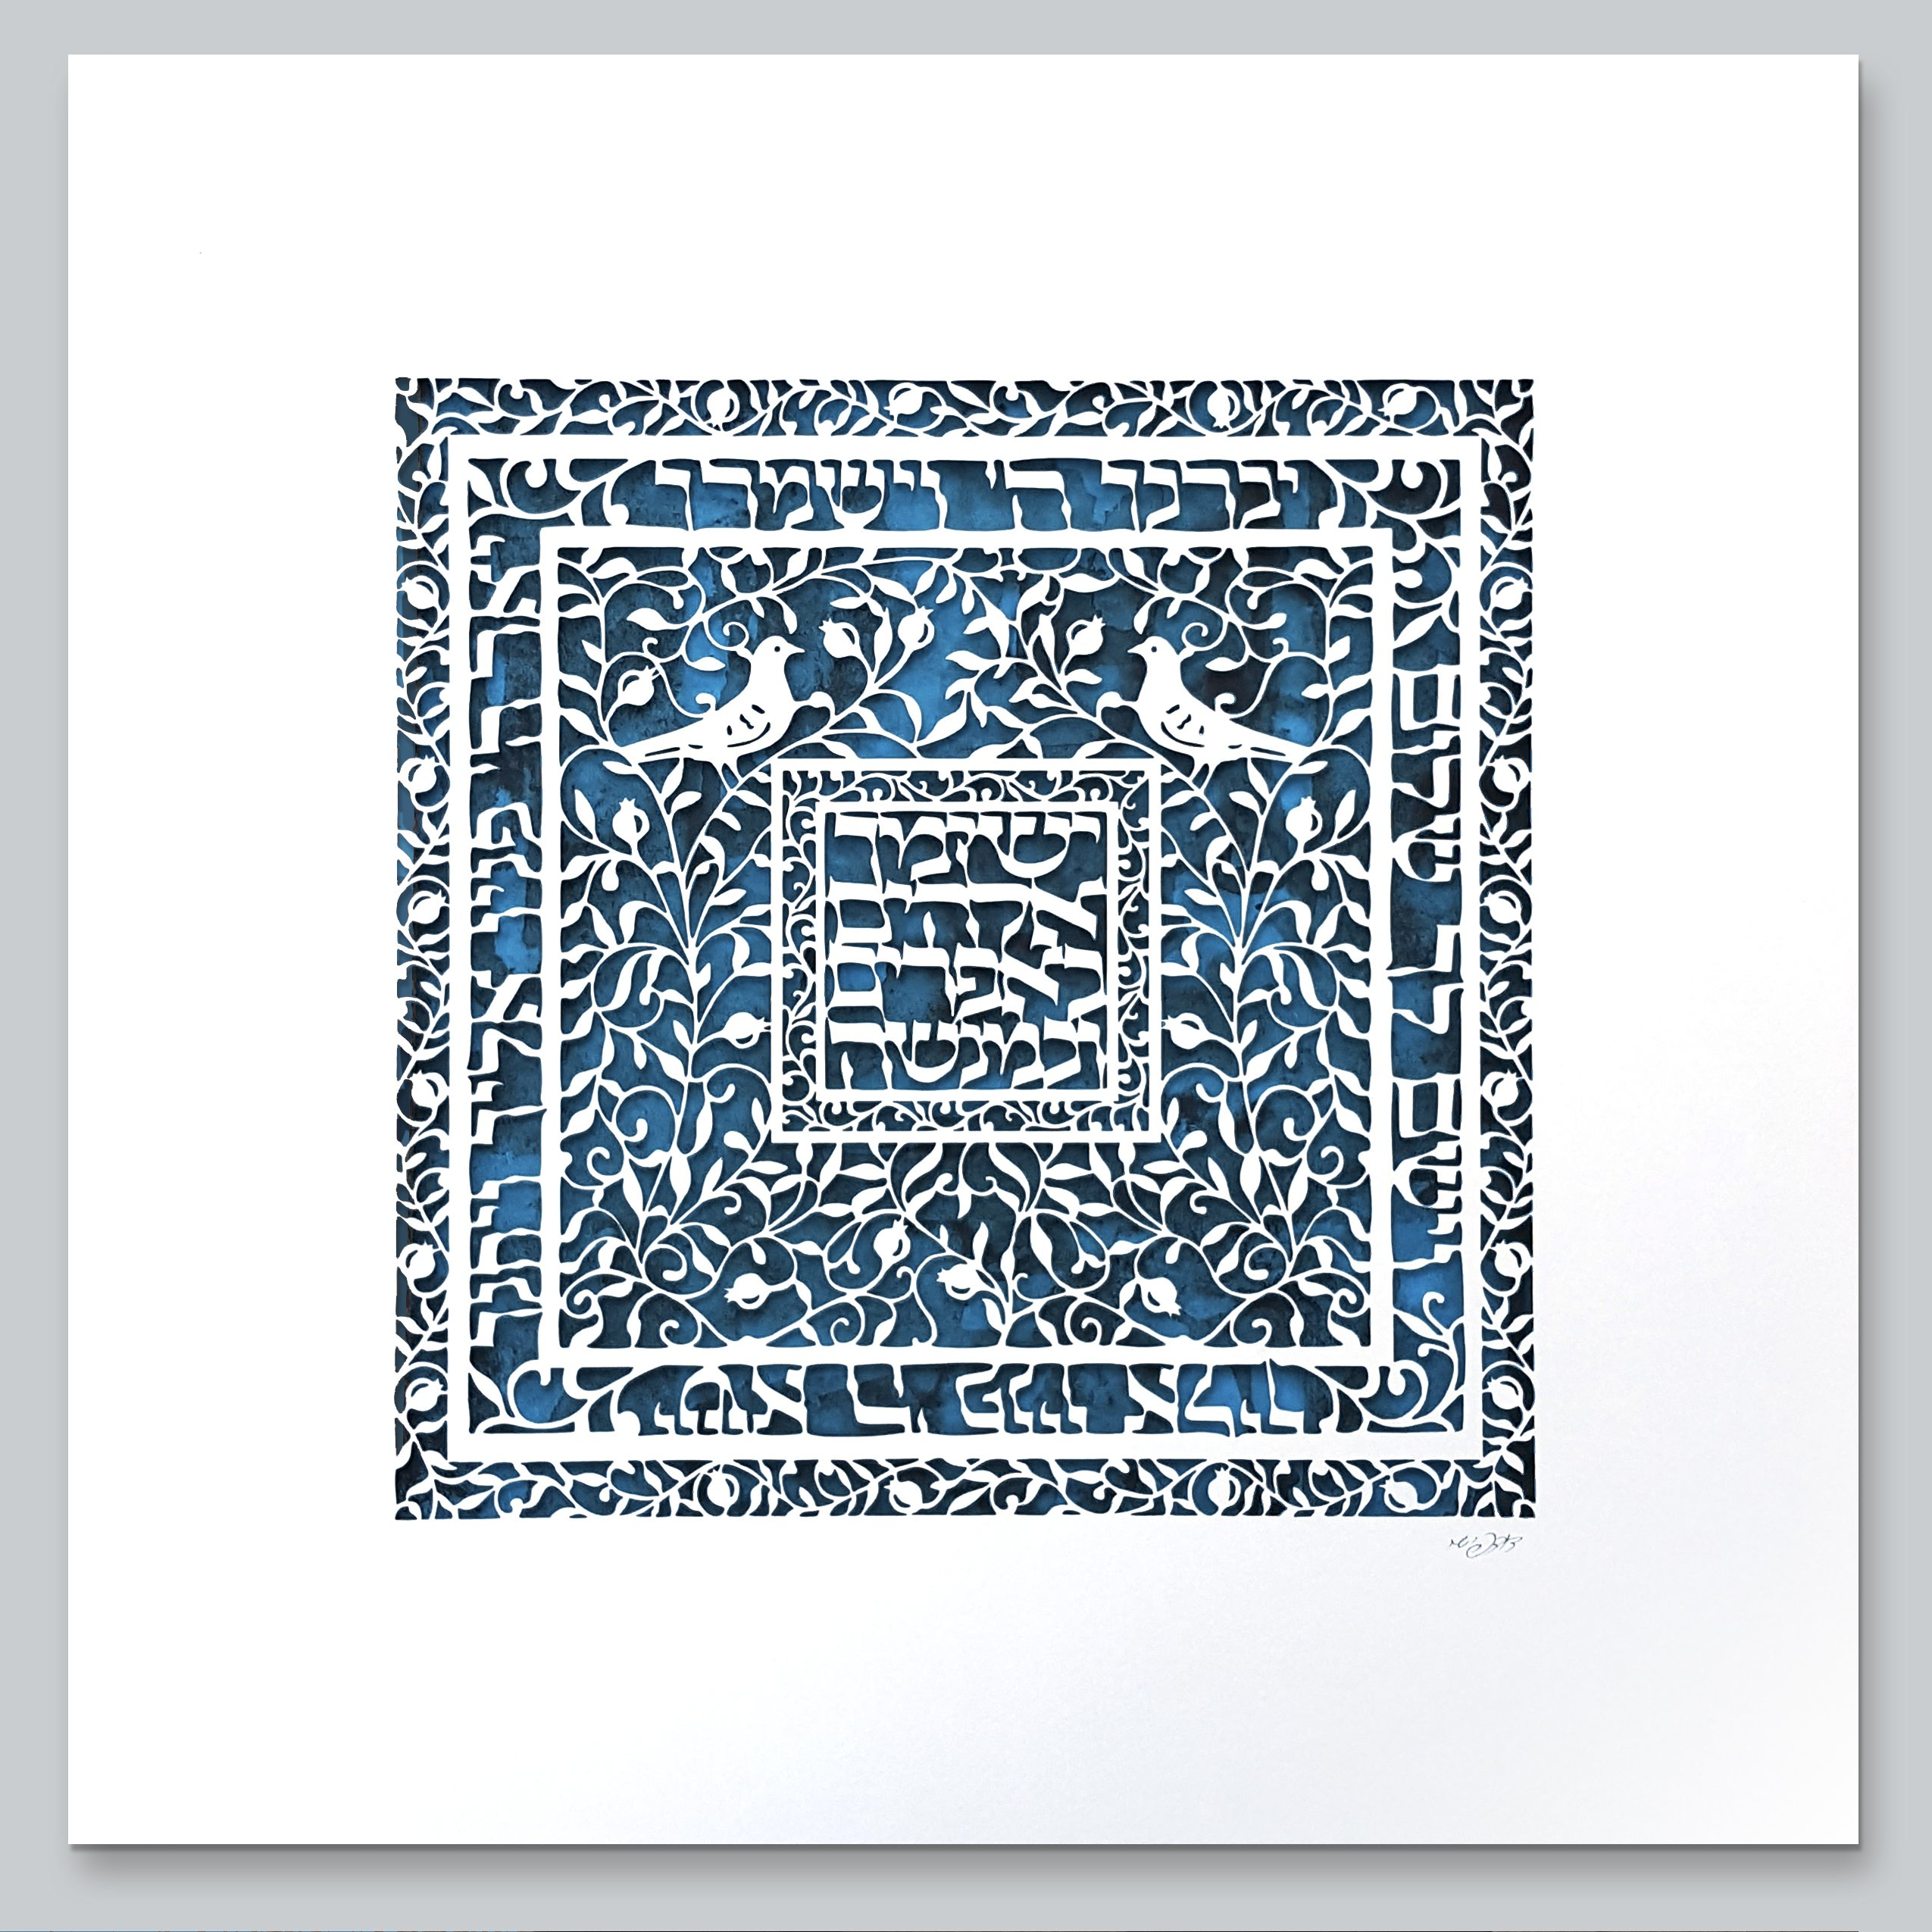 DavidFisherArt Blessing for the Baby Son - Yesimcha Elokim + Priestly Blessing Papercut, Birkat Kohanim, wall hanging, Judaica art, Ready for framing. Signed by the artist David Fisher